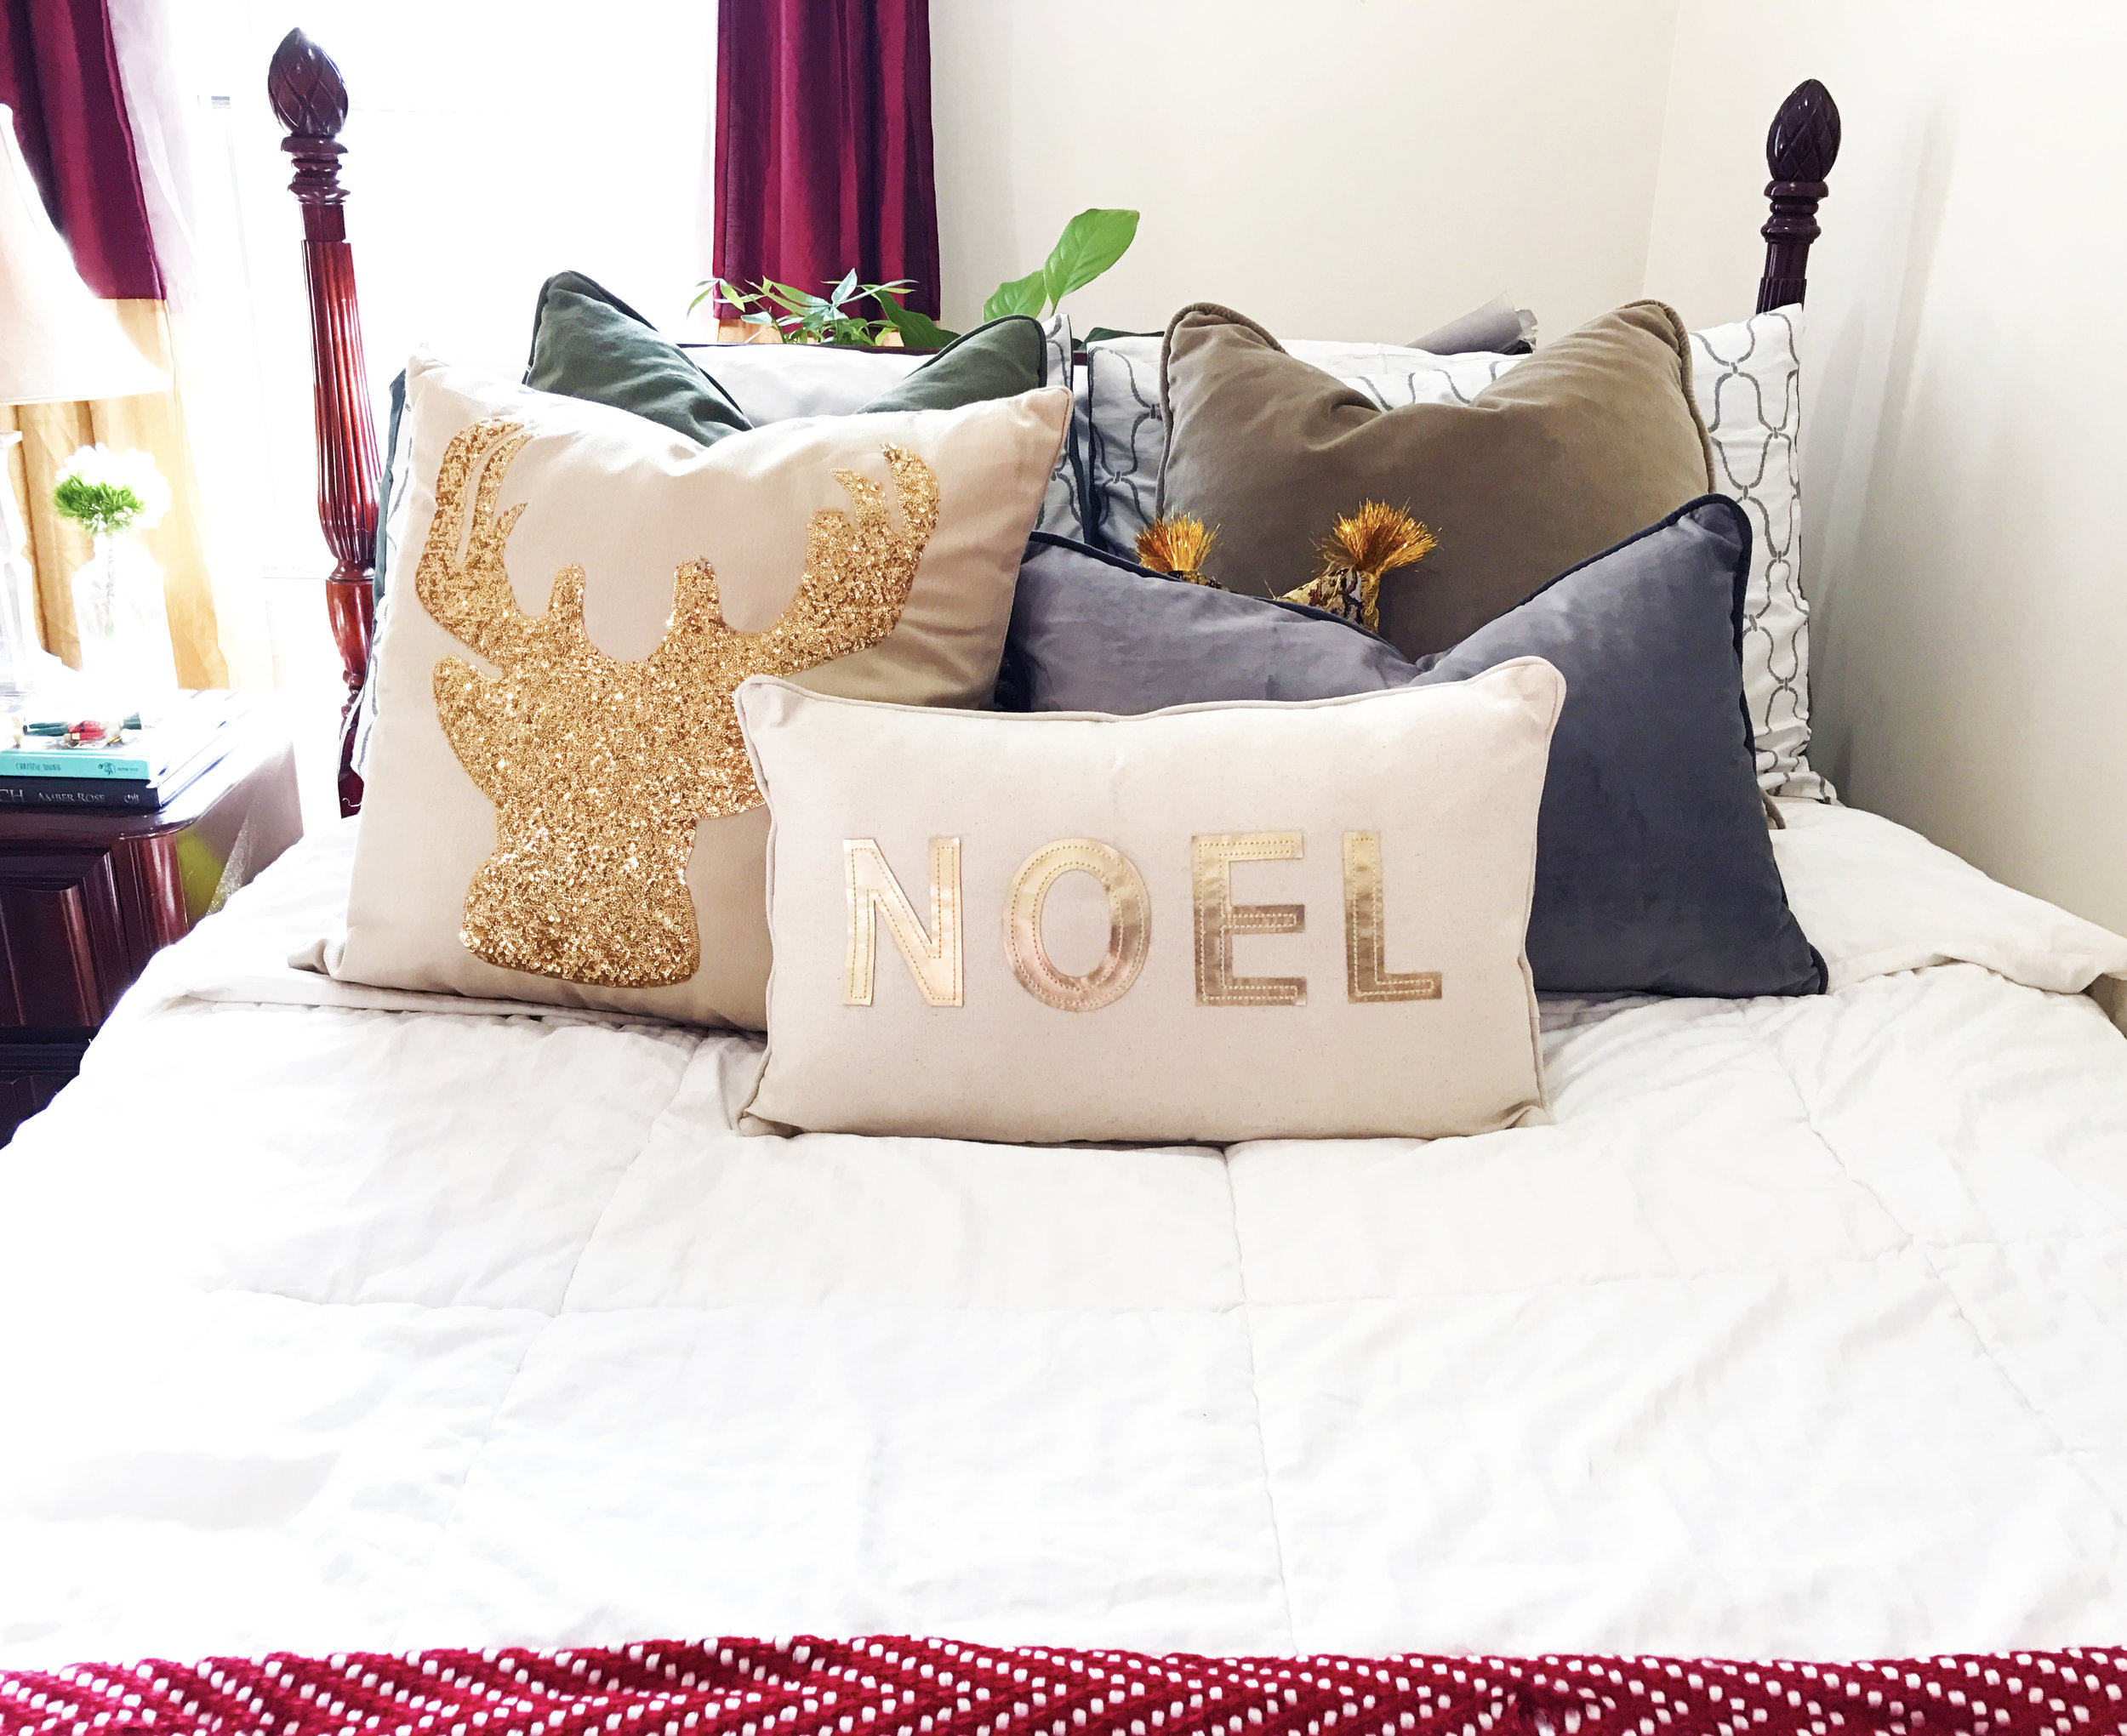 These festive pillows are an easy way to make the bed look finished.